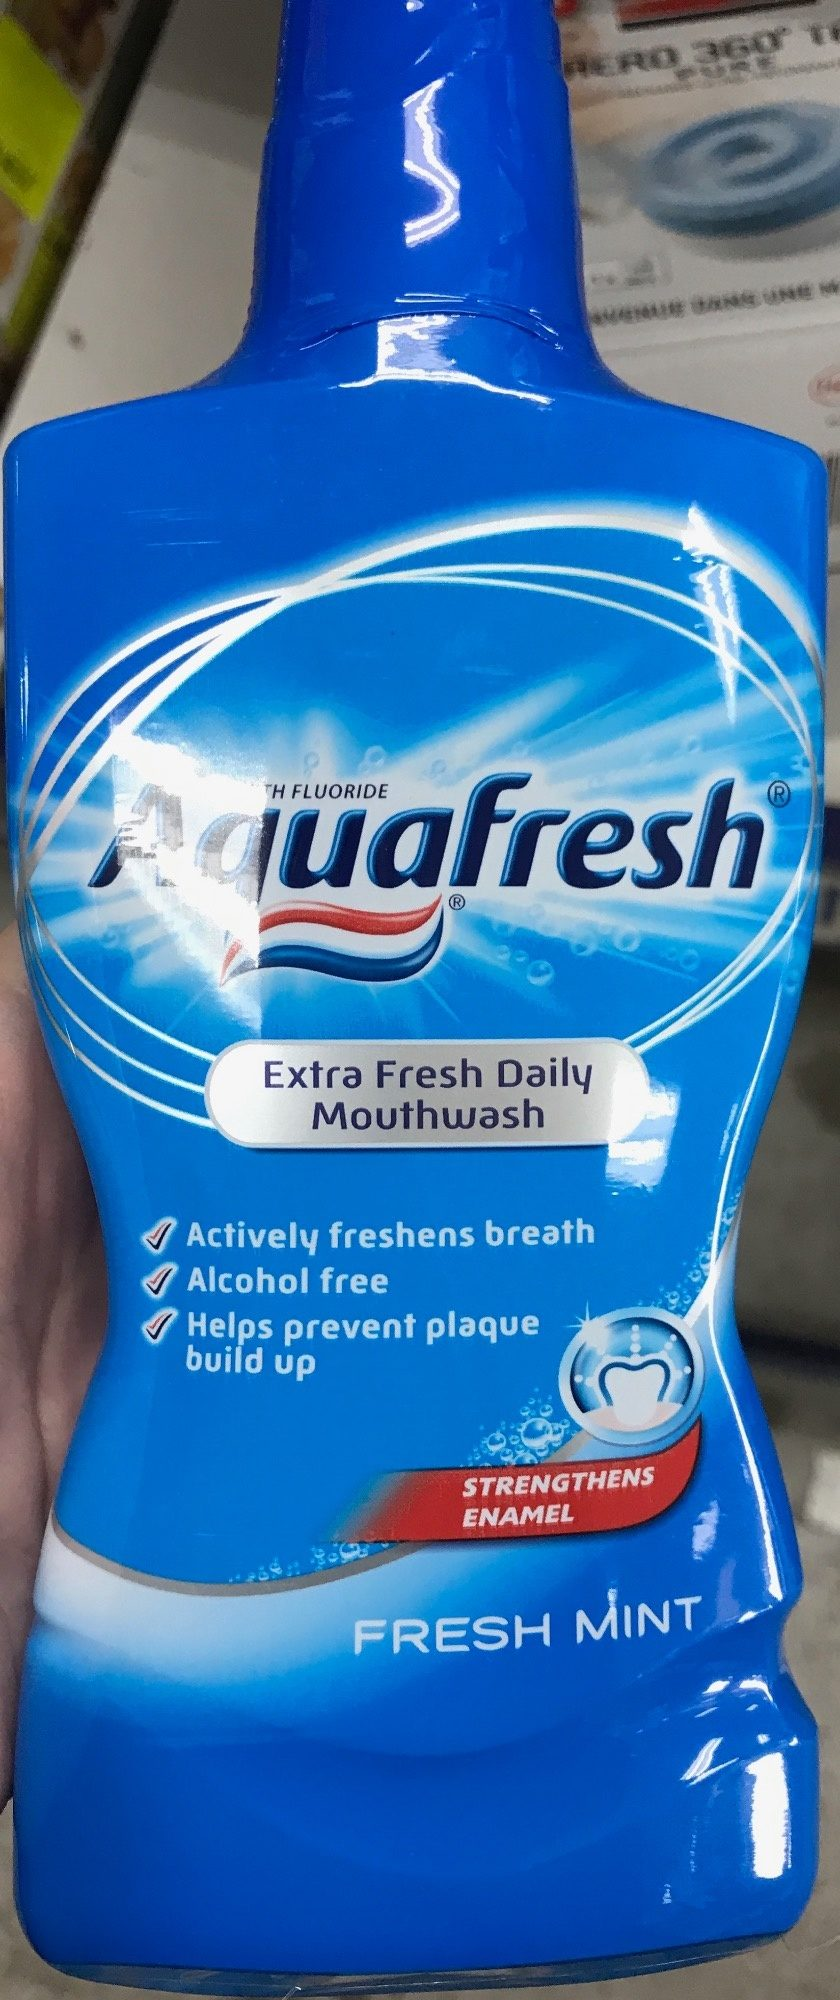 Extra Fresh Daily Mouthwash Fresh Mint - Produit